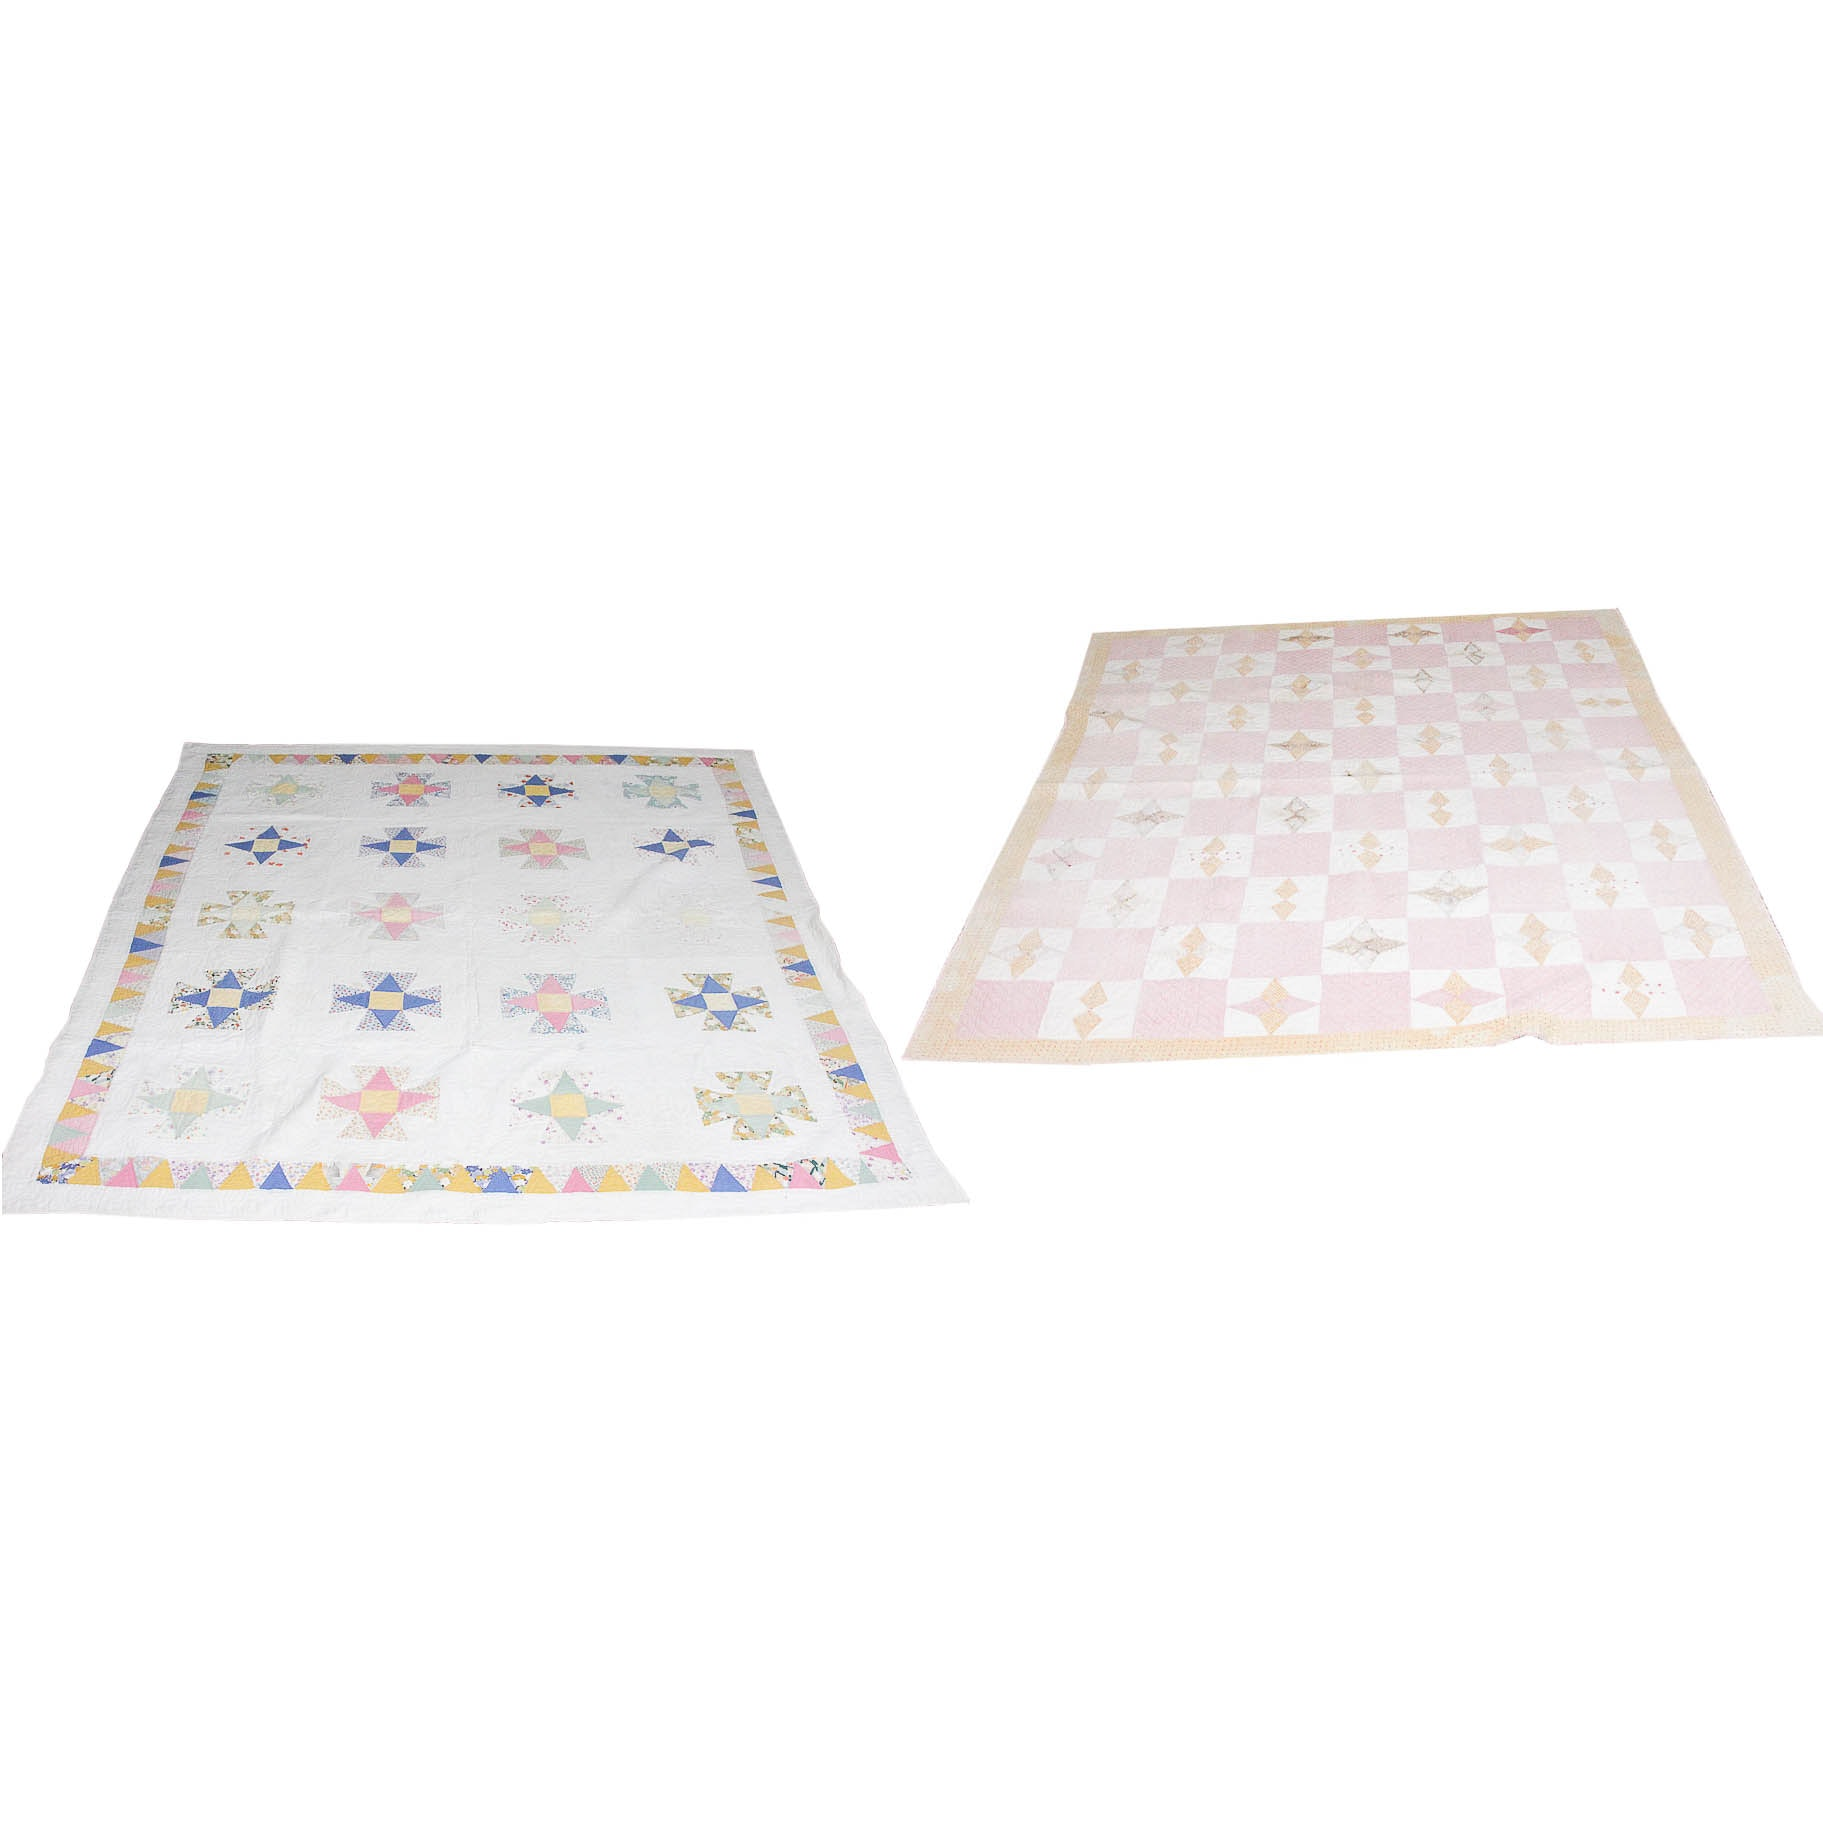 Pair Vintage Four Pointed Star Motif Cotton Quilts